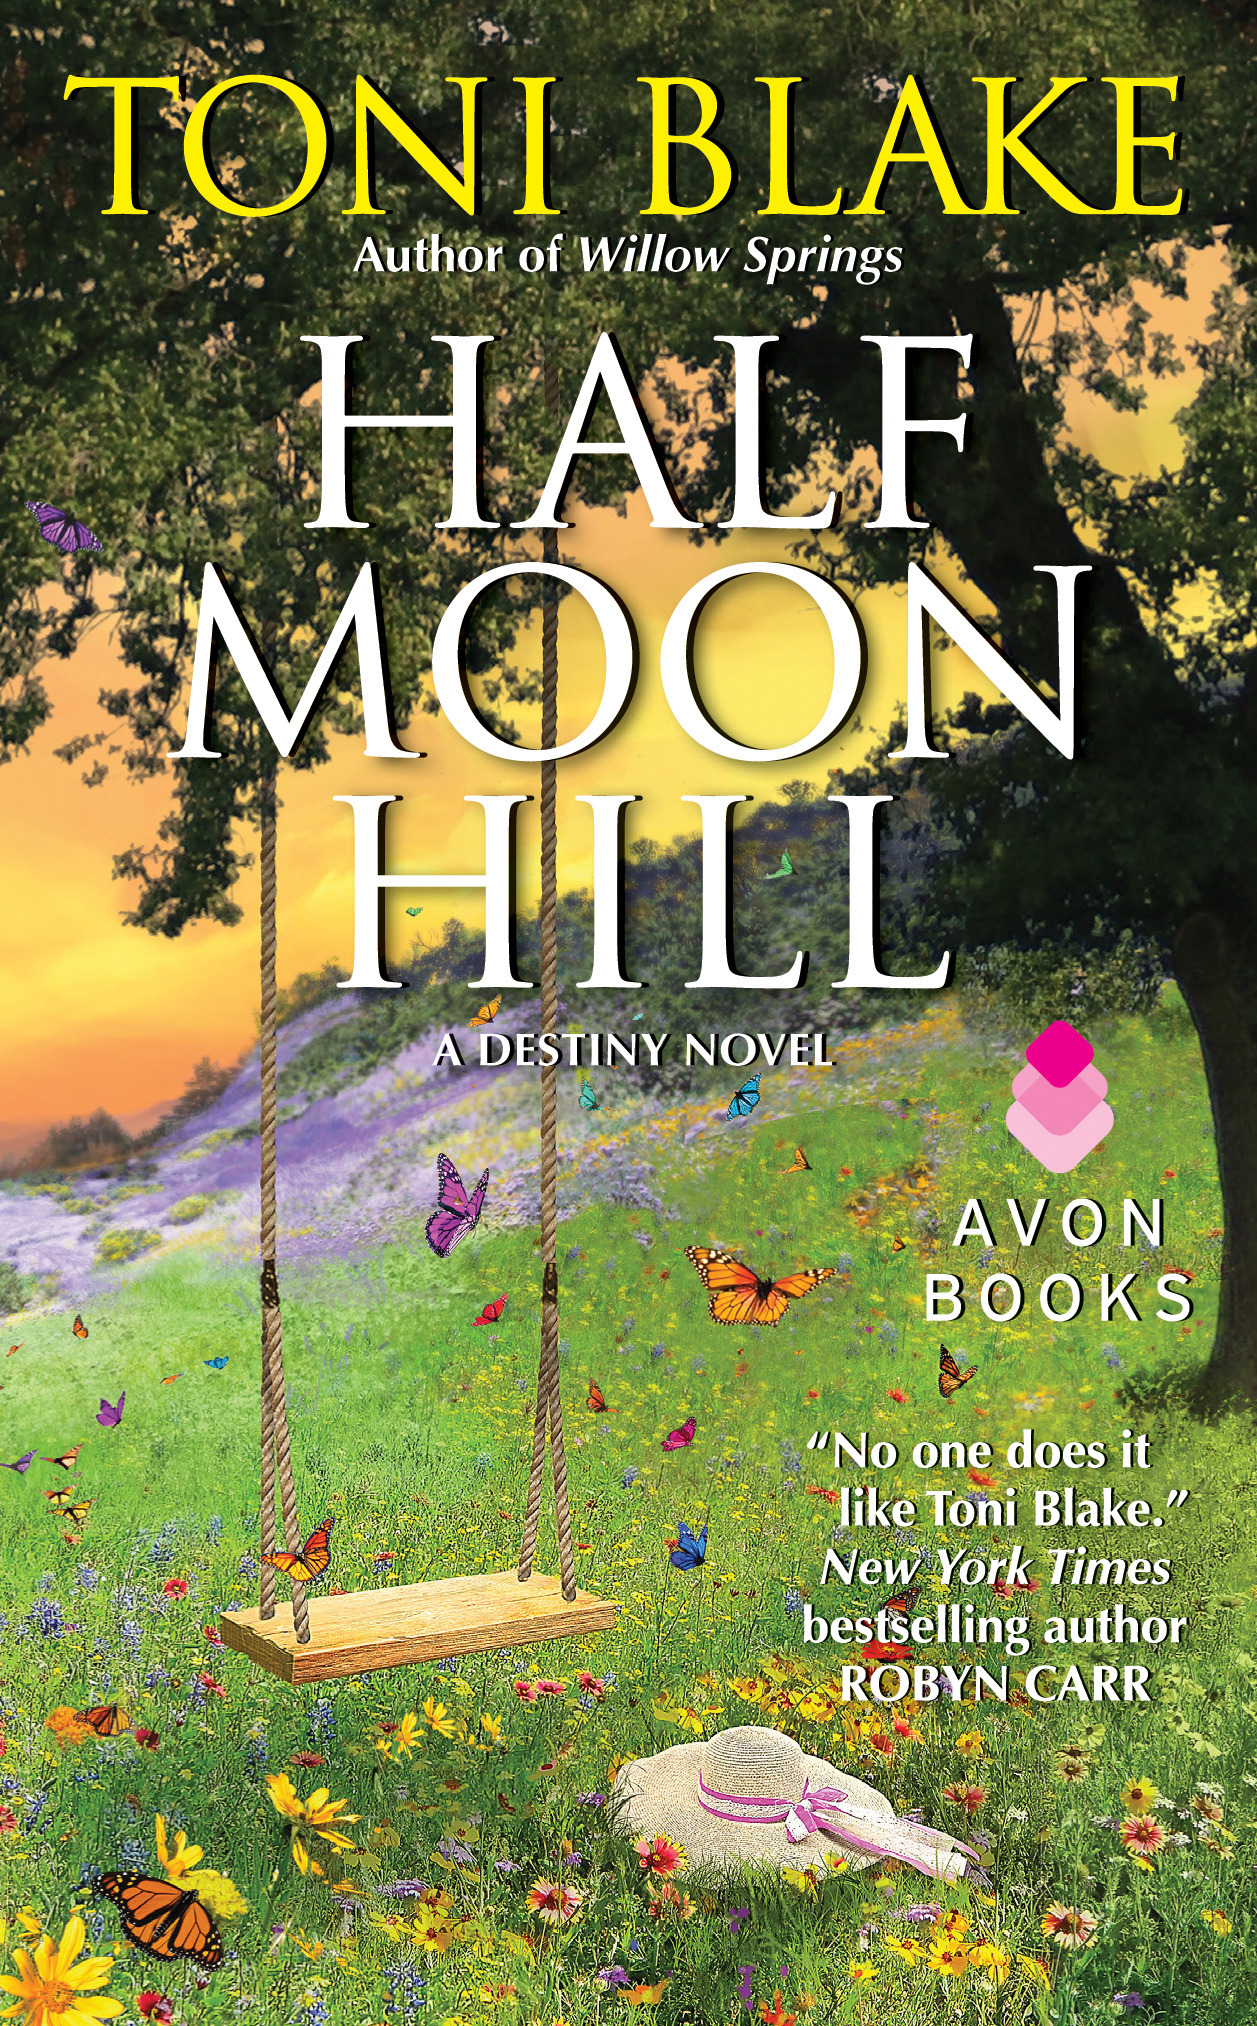 Half Moon Hill  releases April 29, 2013 and is available for pre-order at  Amazon  and  Barnes & Noble .